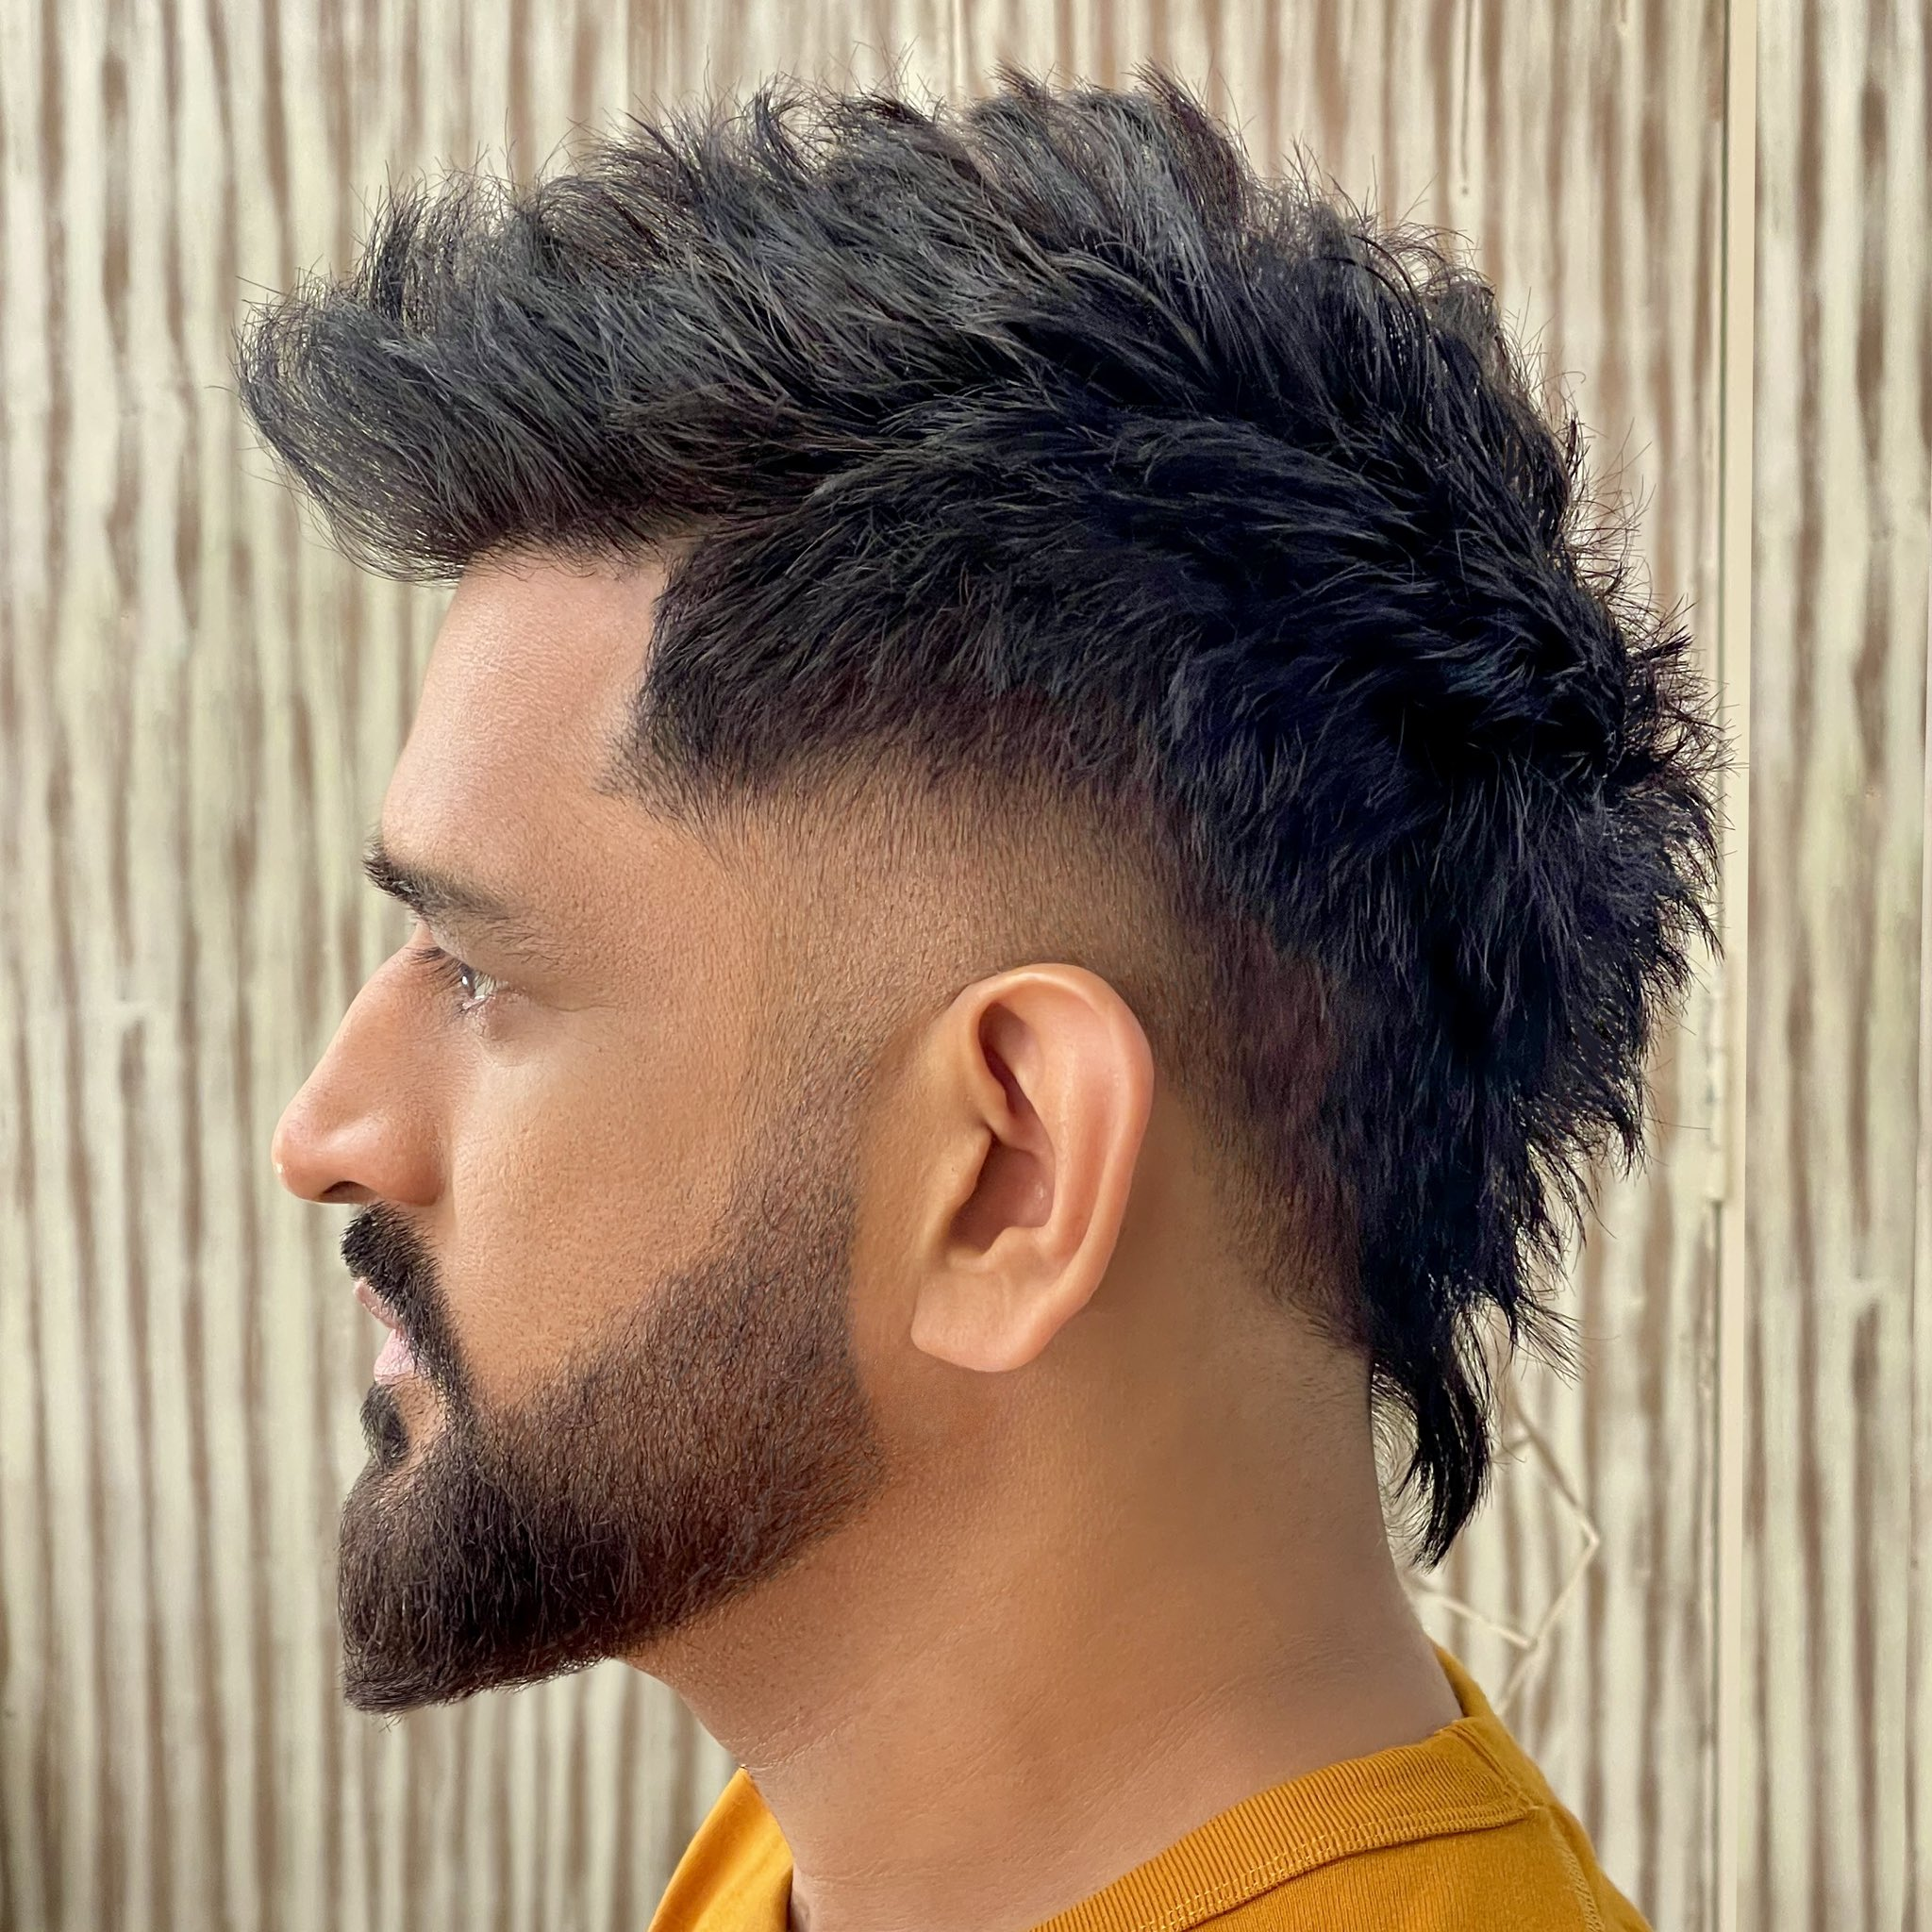 Dhoni's new hairstyle surprise fans